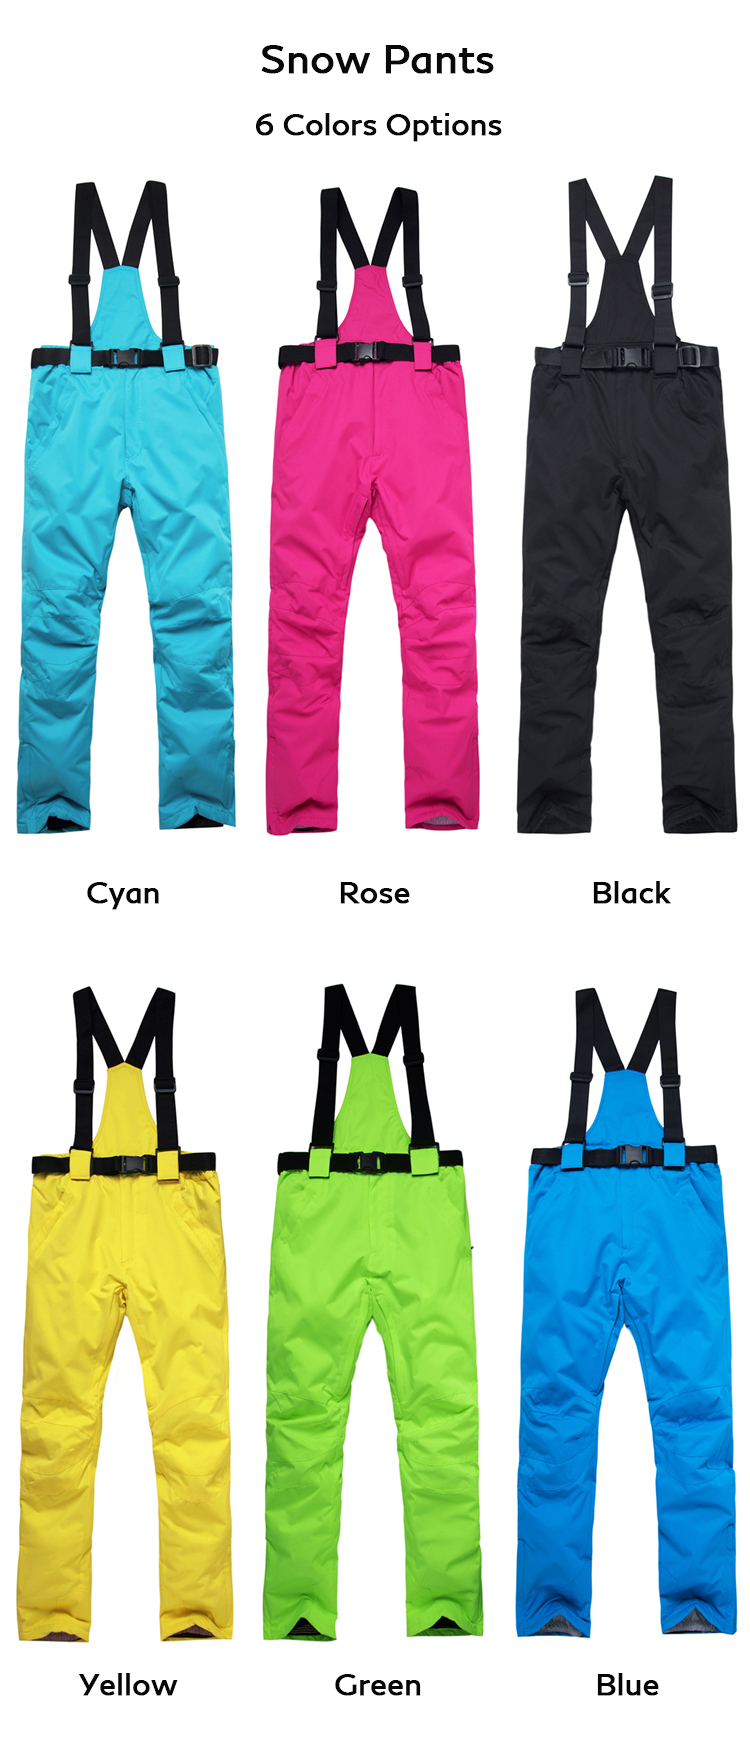 Arctic Queen Women's Bright Colorful Performance Insulated Ski Suits